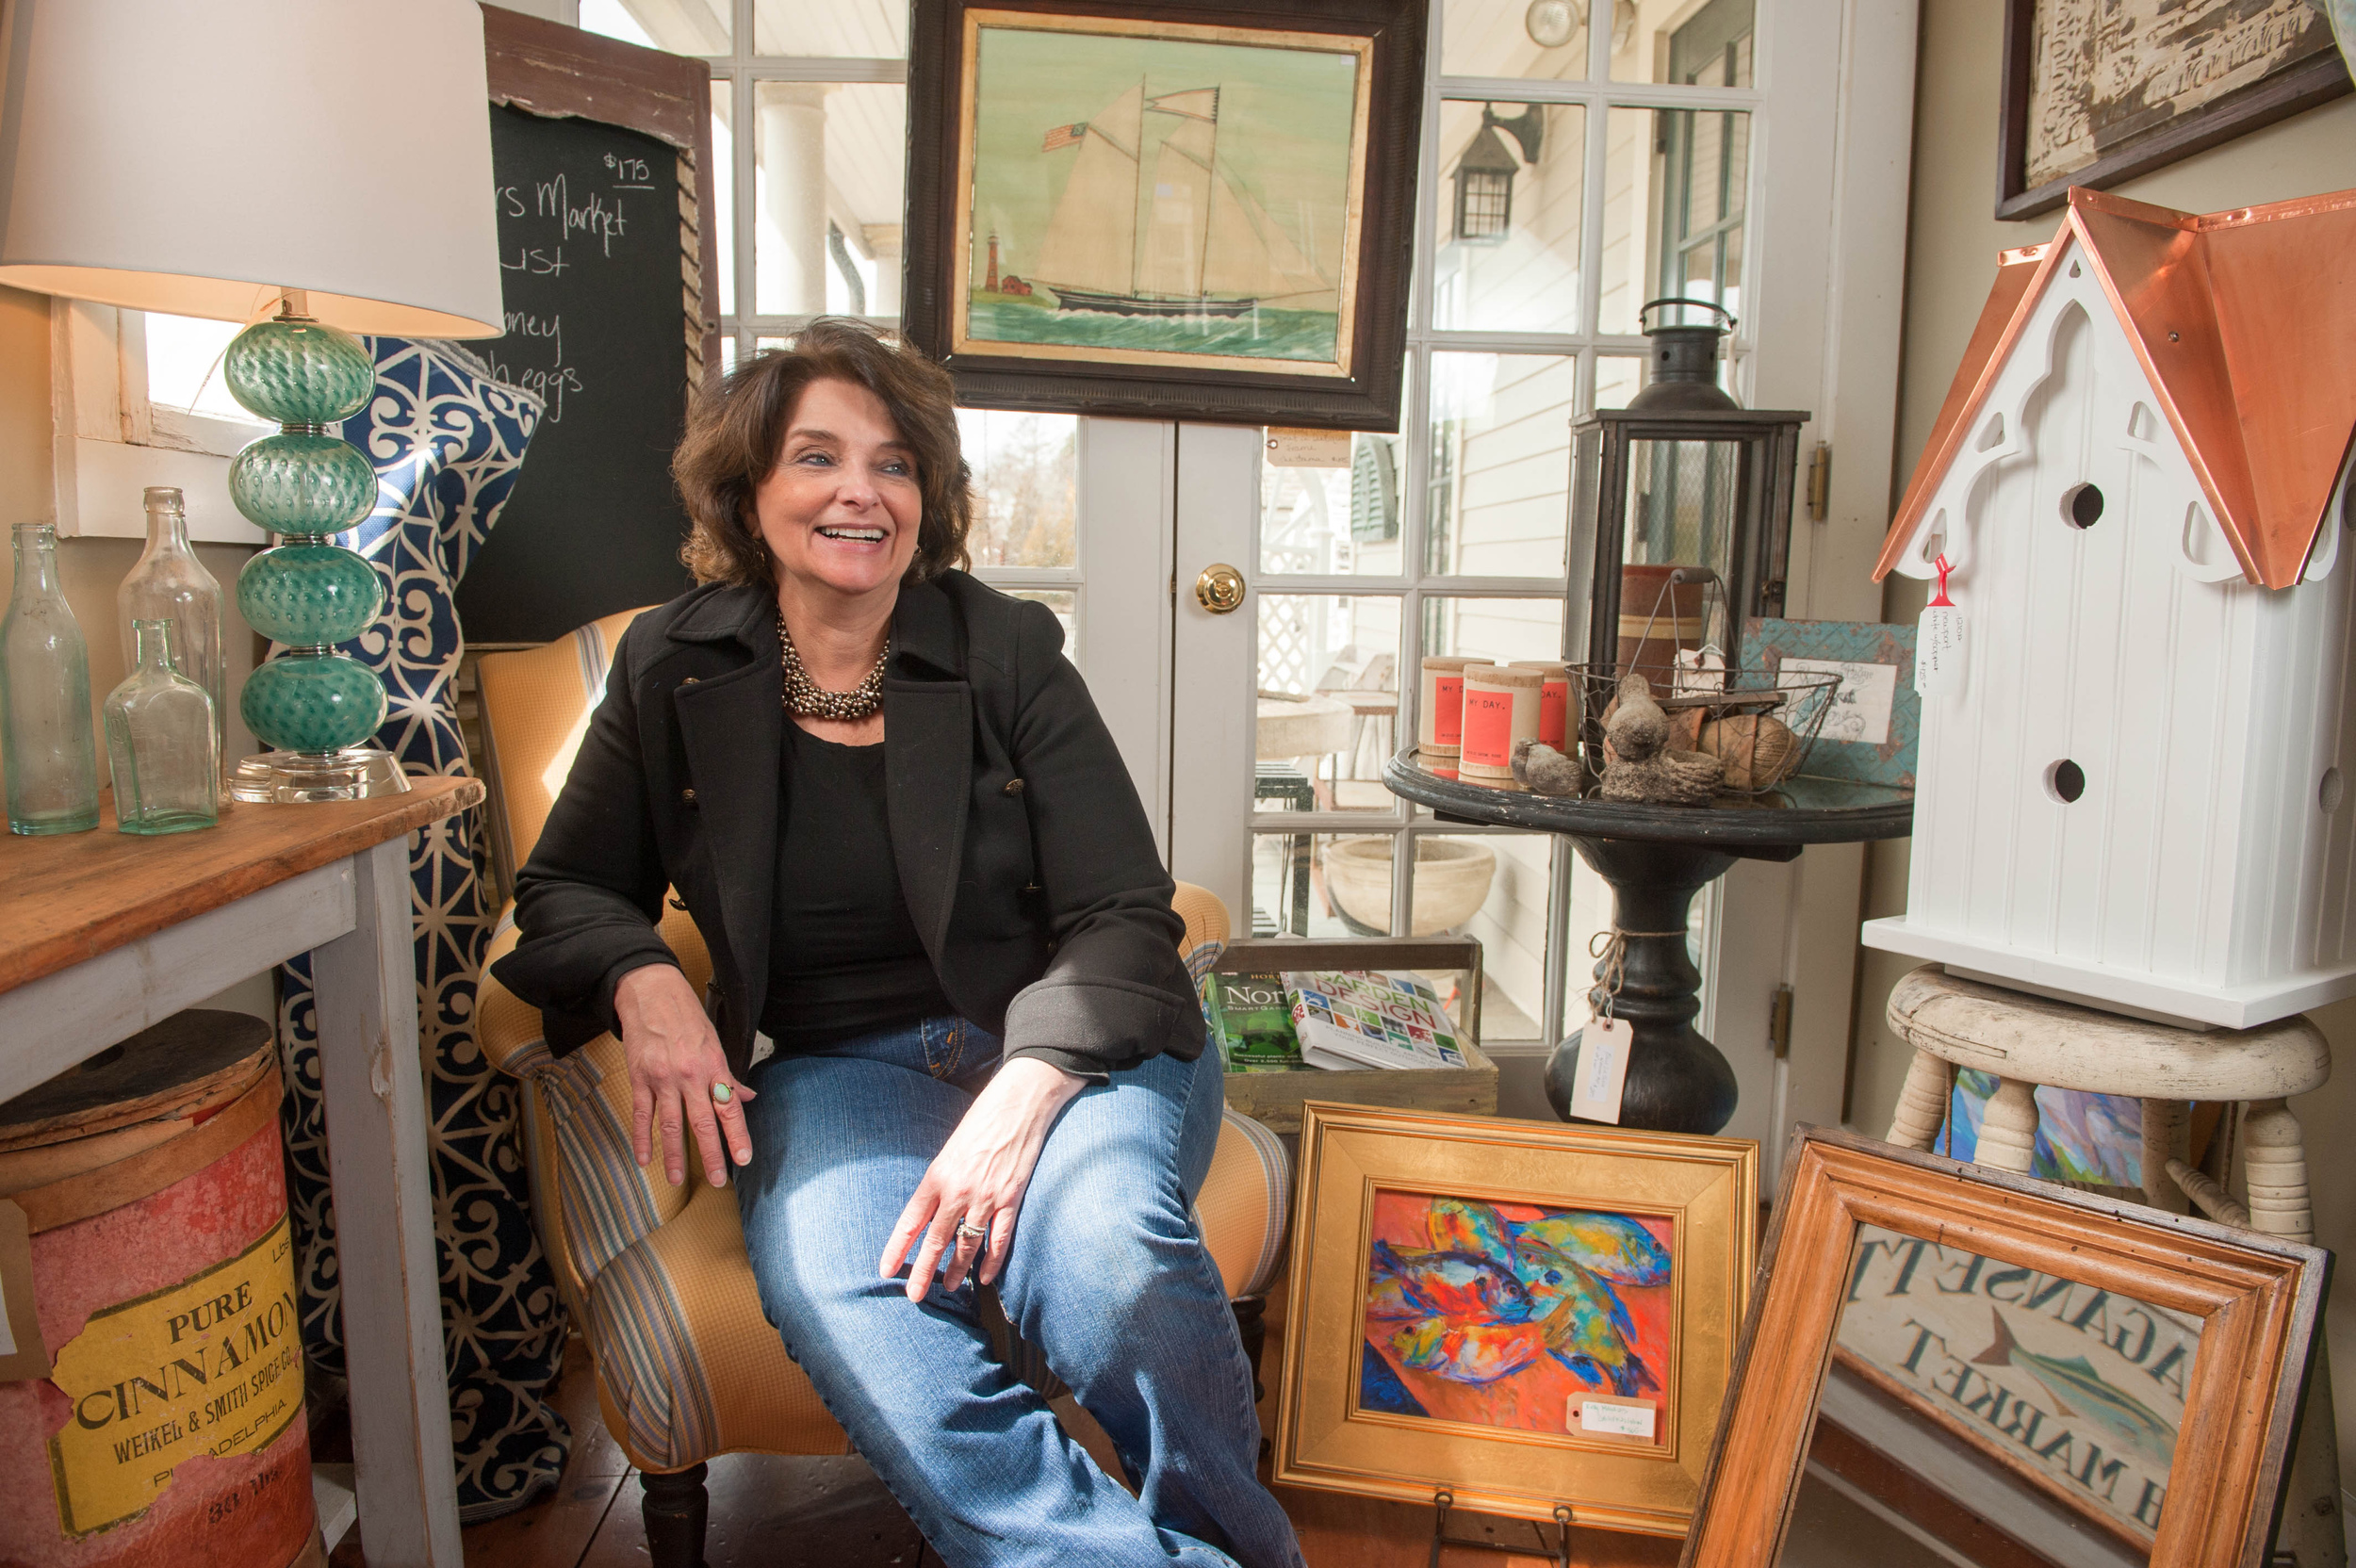 Deb Mehring, owner of The Wickford Collection, talks about her previous interior design projects in Rhode Island